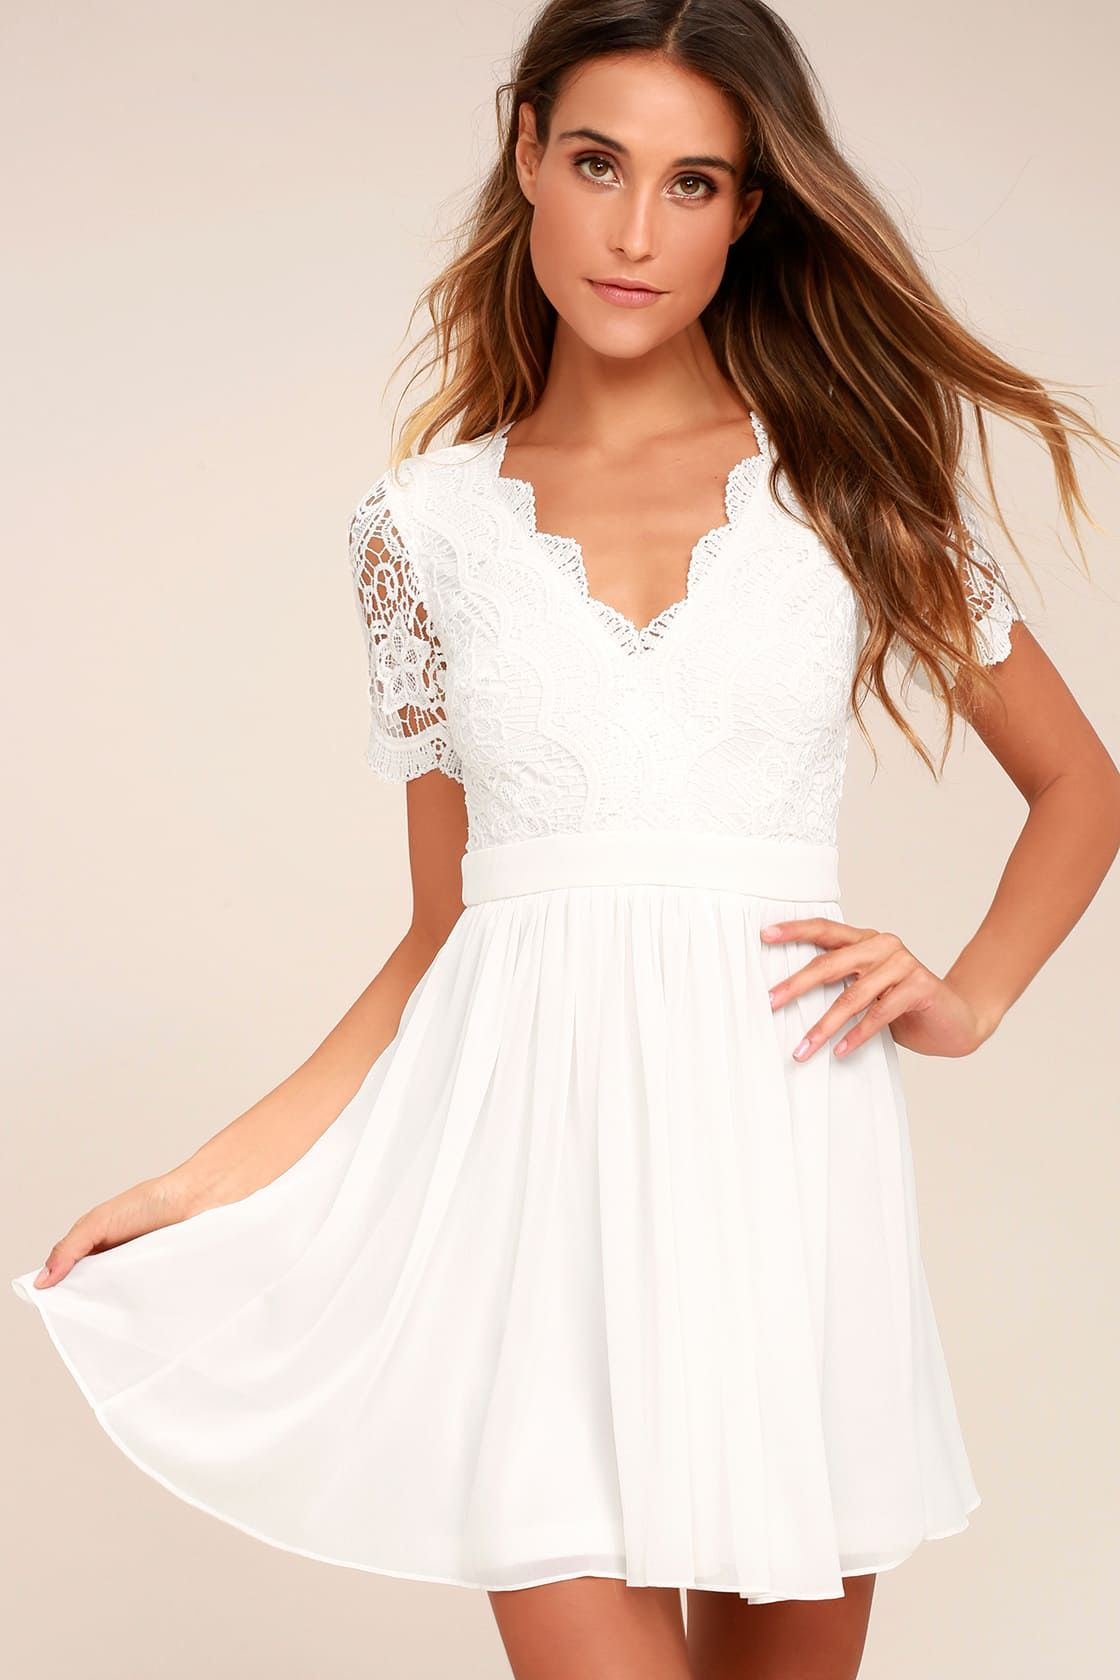 Angel In Disguise White Lace Skater Dress White Lace Skater Dress Lace White Dress Lace Skater Dress [ 1680 x 1120 Pixel ]